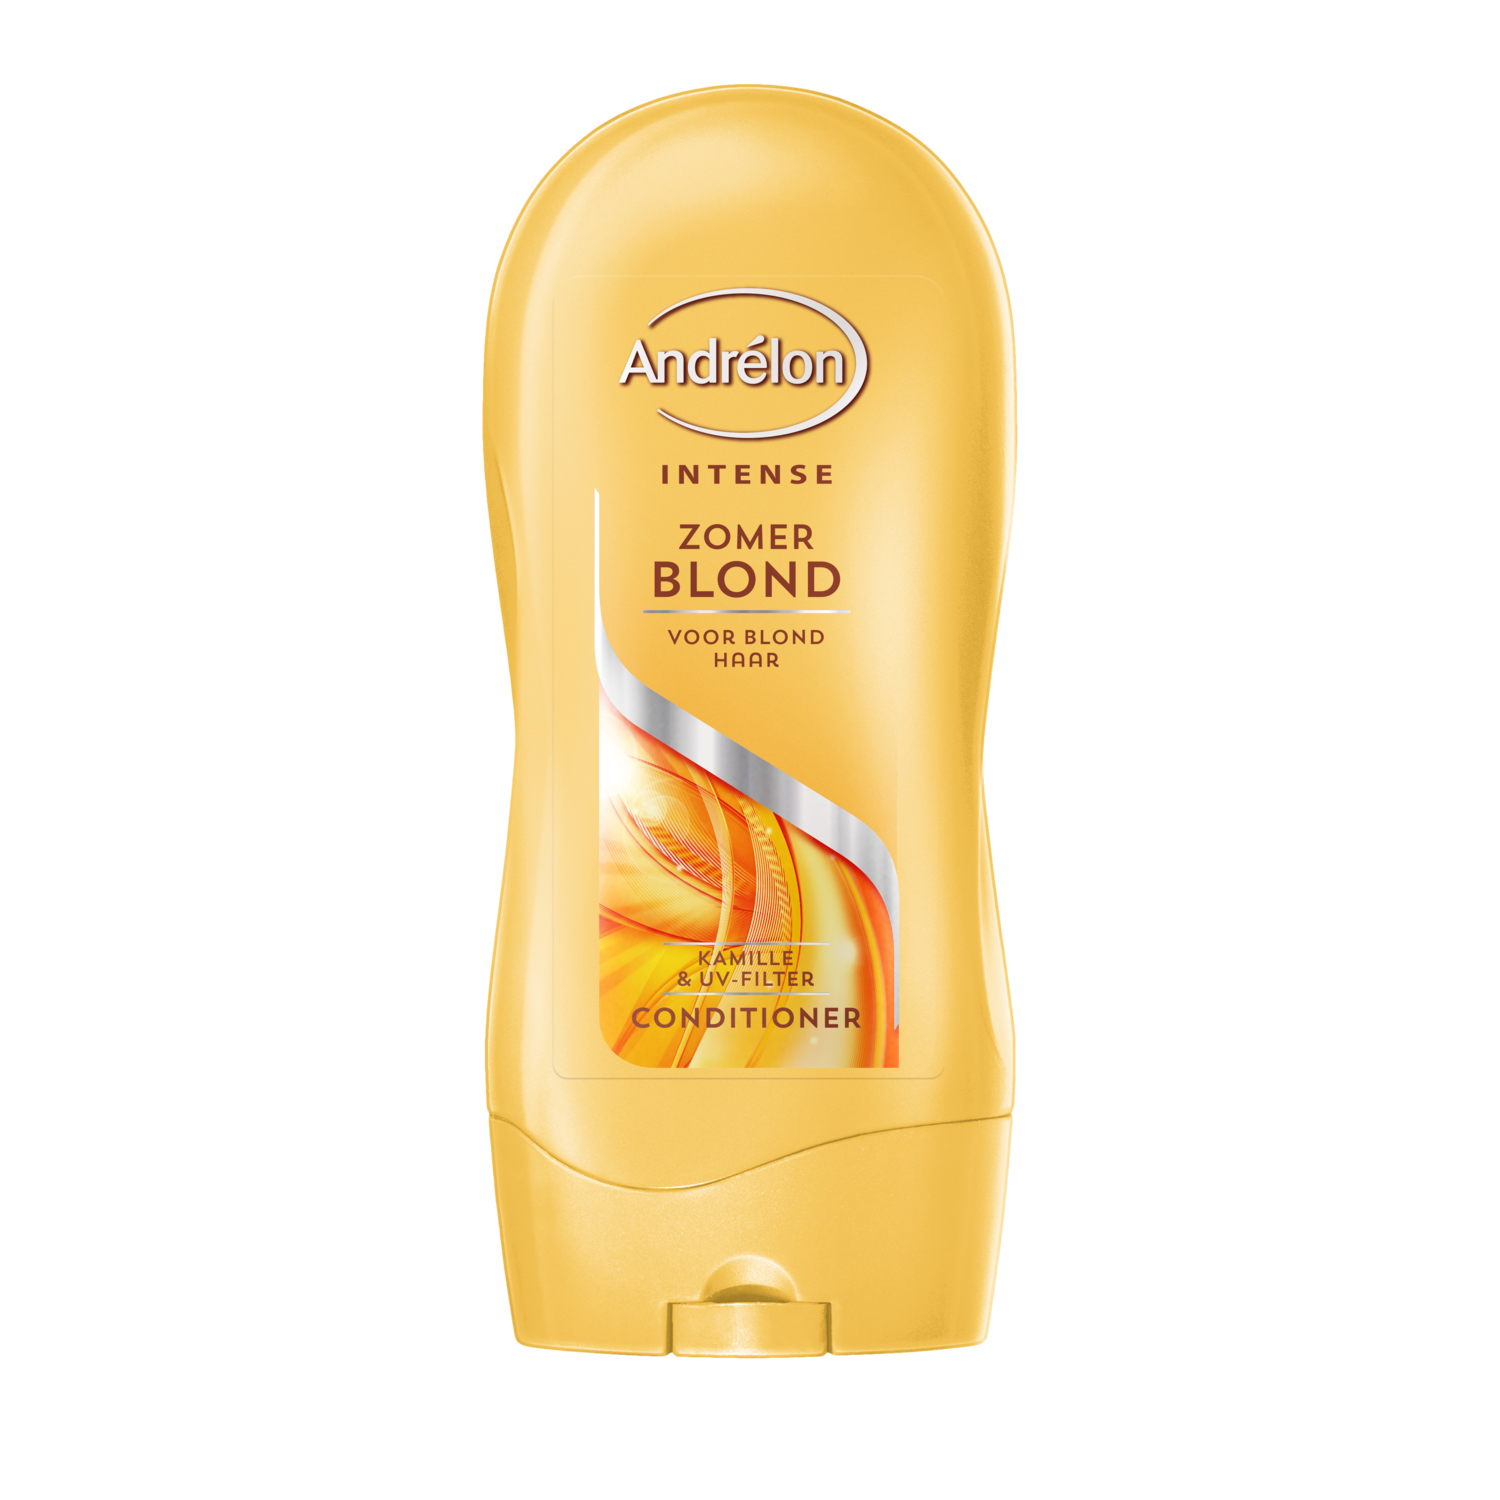 Andrelon Intense Zomer Blond CD 300ml 8710447321874